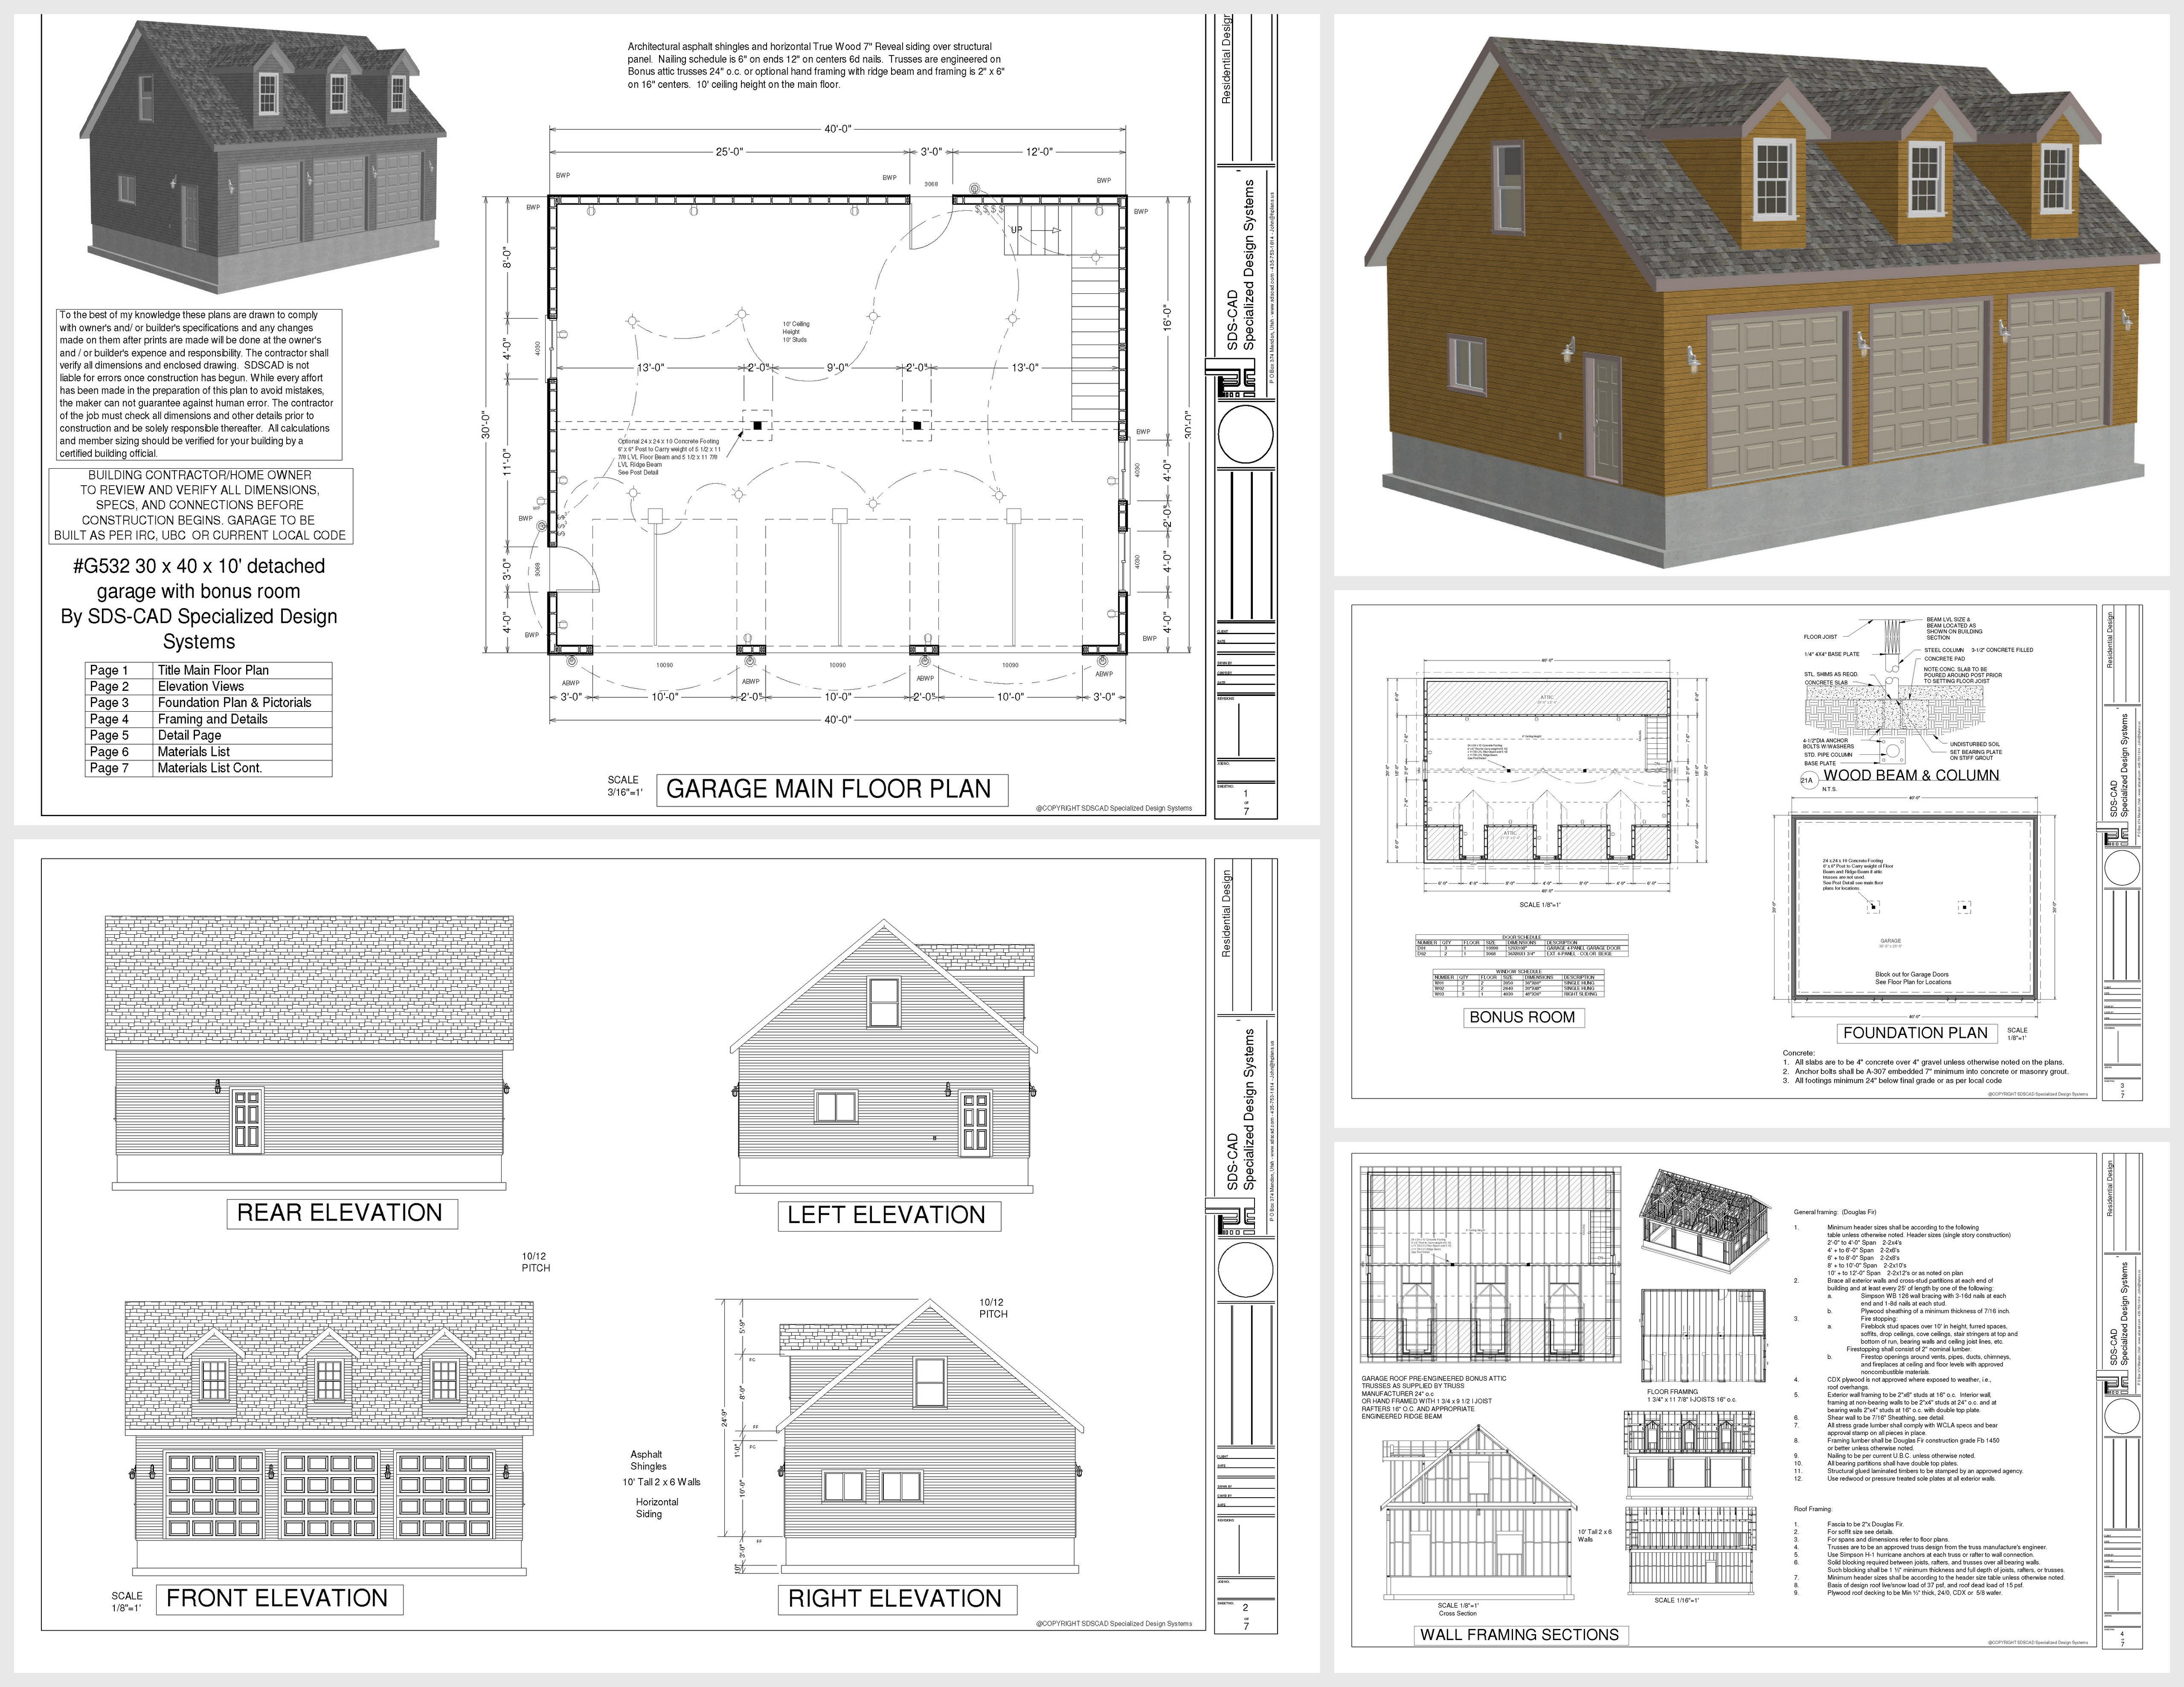 40x40 garage plans low cost home plans to build interior design 40x40 garage plans 3 bedroom log cabin plans small cottage style g532 30 x 40 x